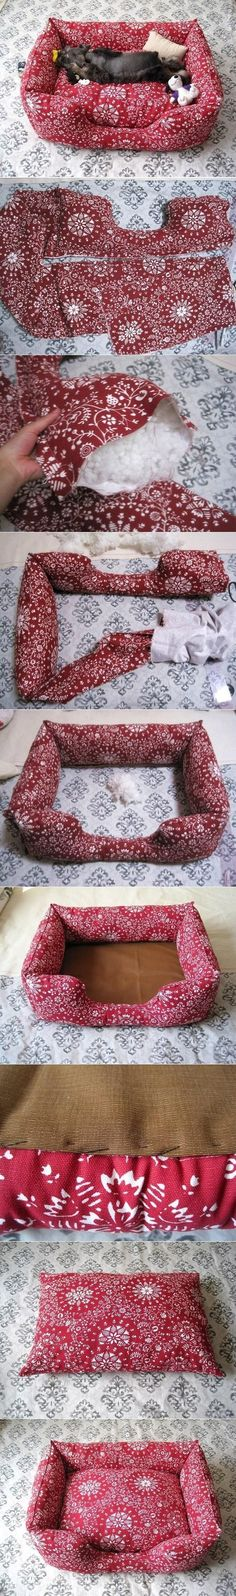 why buy a boring brown dog bed when you can have a customized and unique one that fits with your decor! DIY dog bed